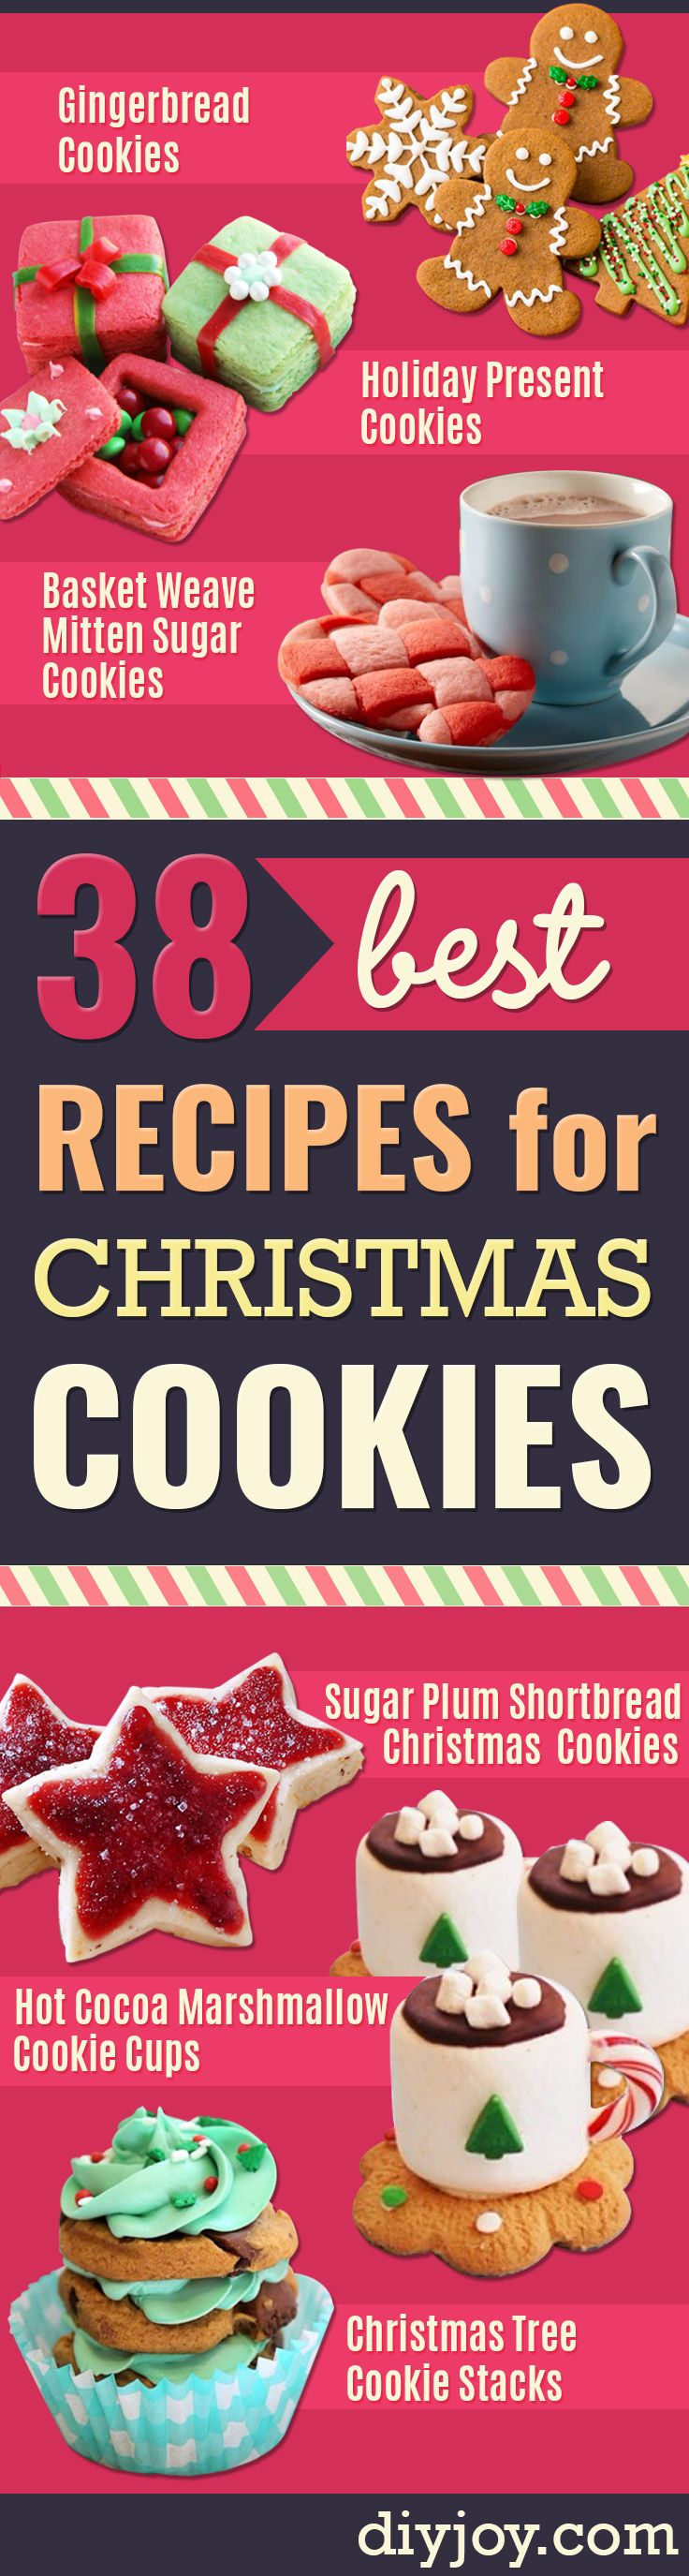 38 Best Recipes for Christmas Cookies - Easy Decorated Holiday Cookies - Candy Cookie Recipes Ideas for Kids - Traditional Favorites and Gluten Free and Healthy Versions - Quick No Bake Cookies and Last Minute Desserts for the Holidays http://diyjoy.com/best-christmas-cookie-recipes